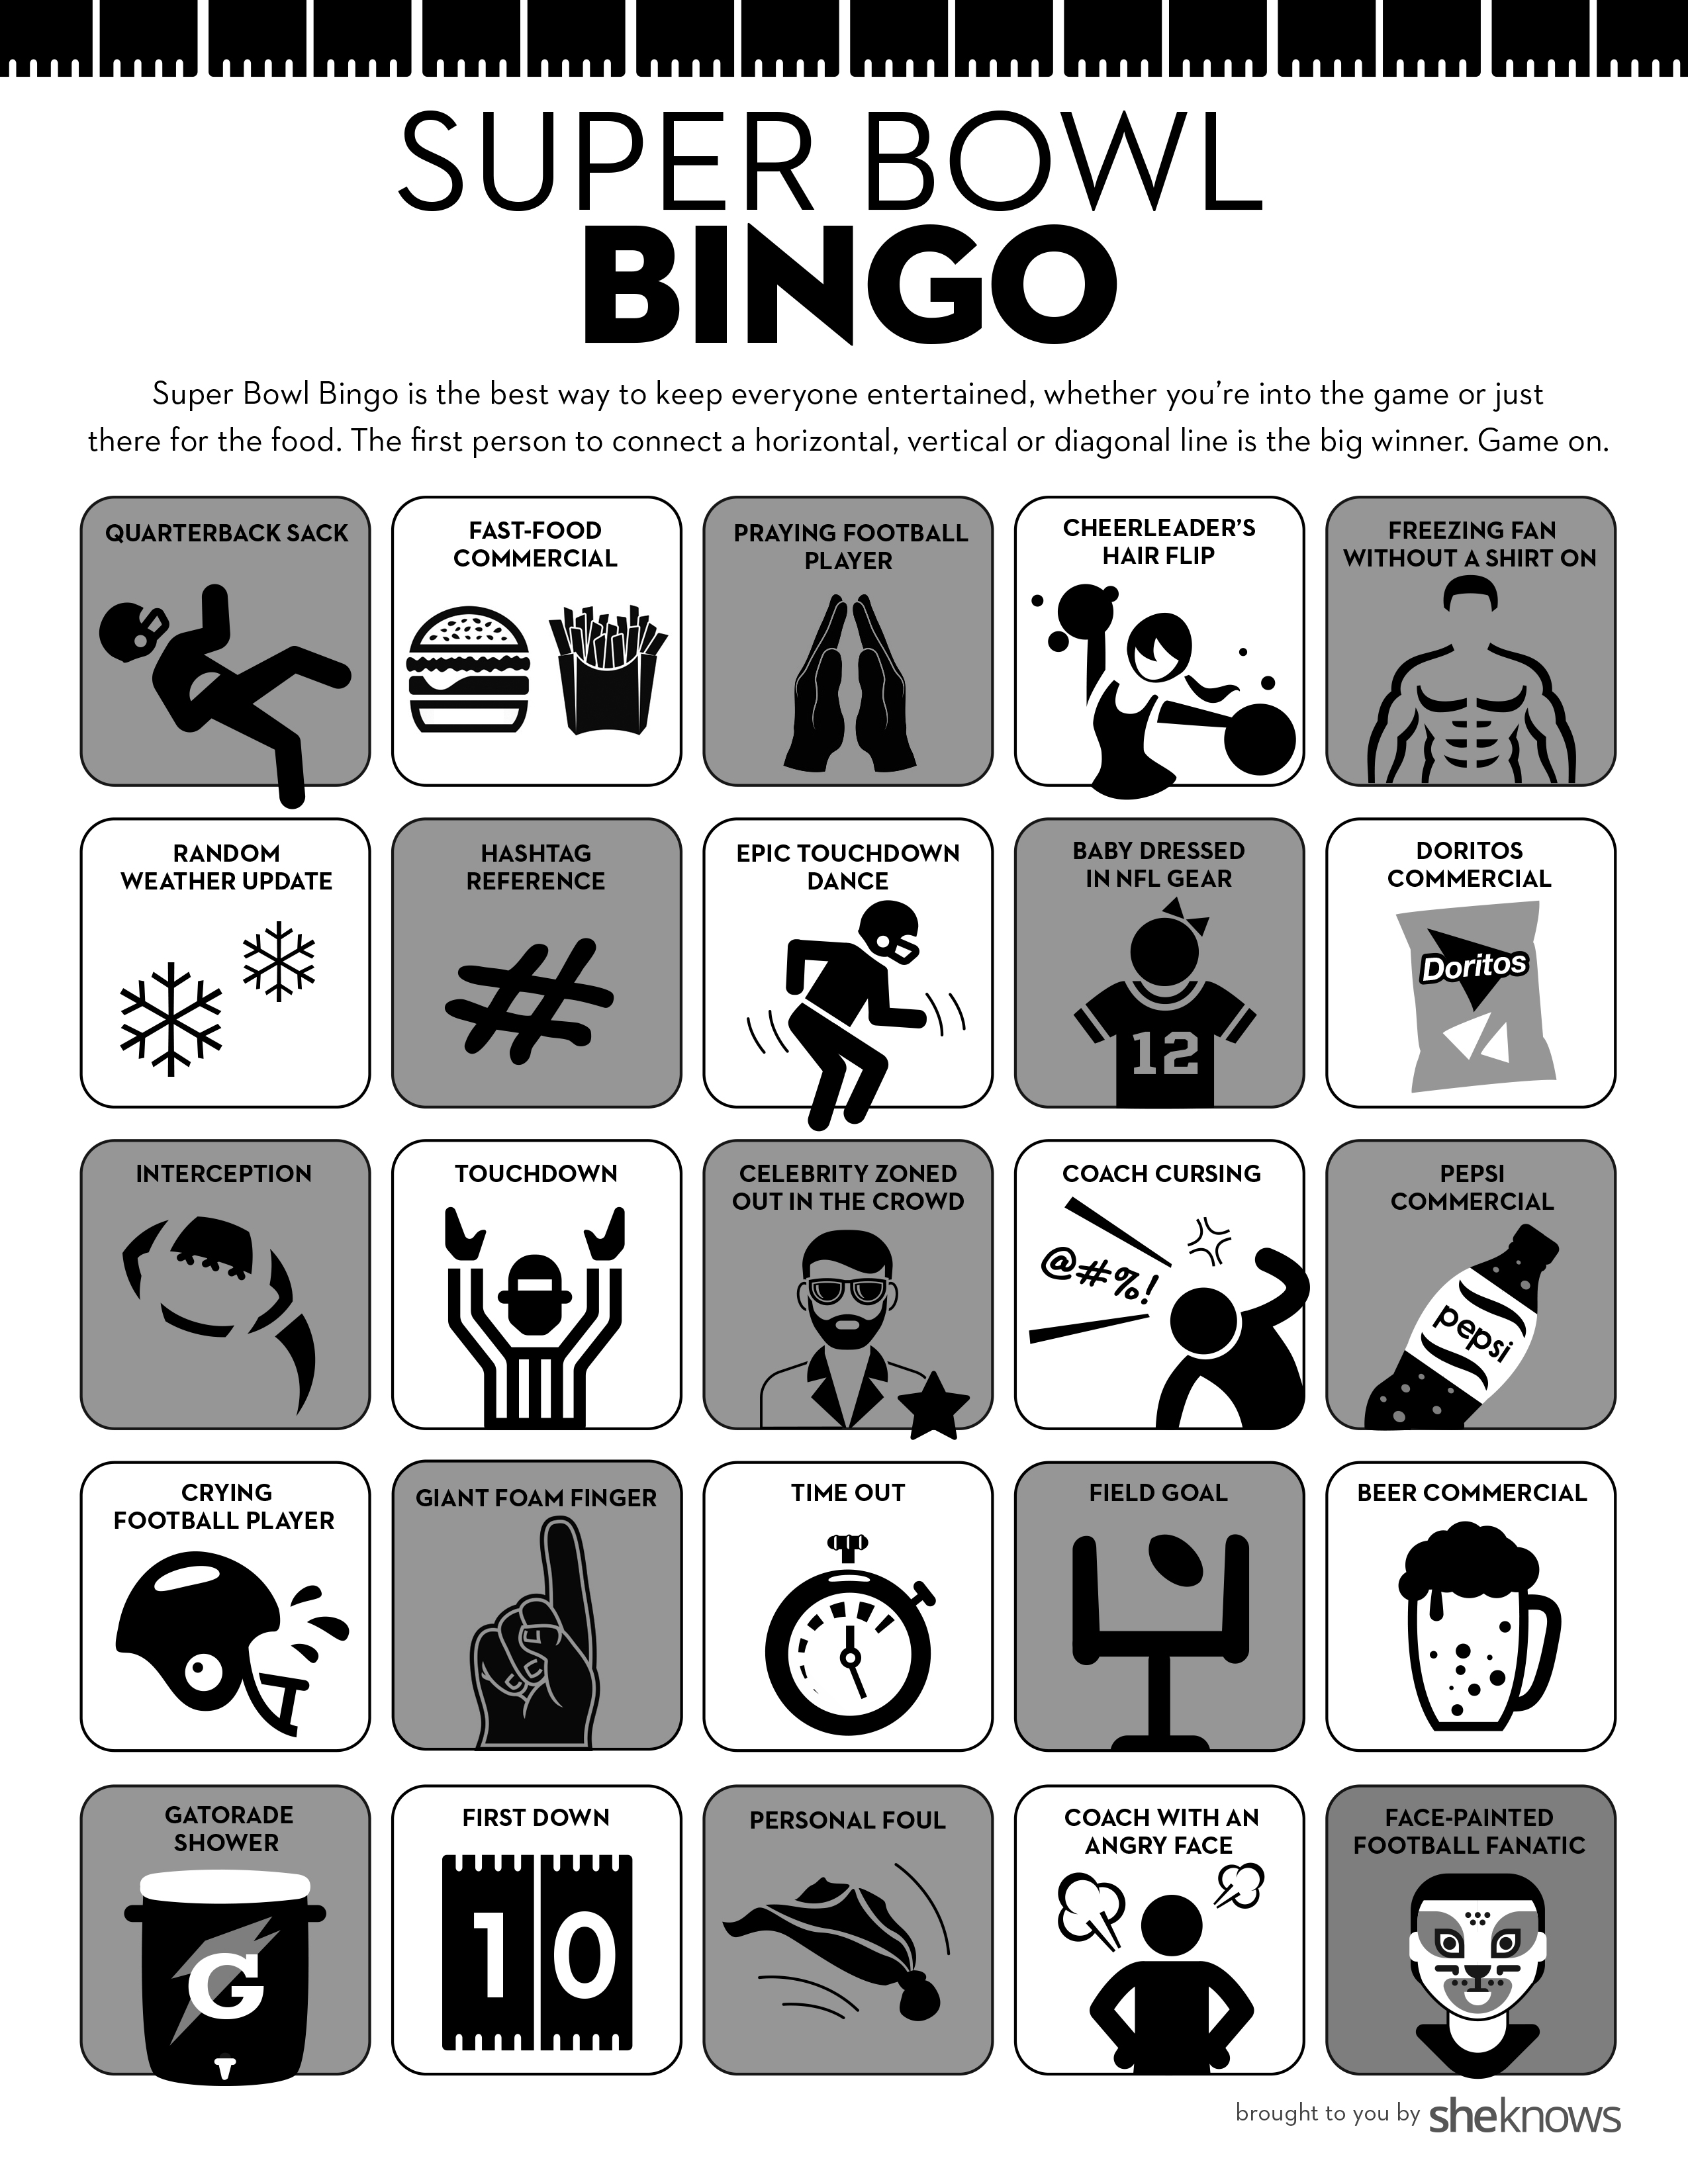 graphic relating to Superbowl Boards Printable named Tremendous Bowl Bingo Is the Fantastic Get together Activity for Anyone